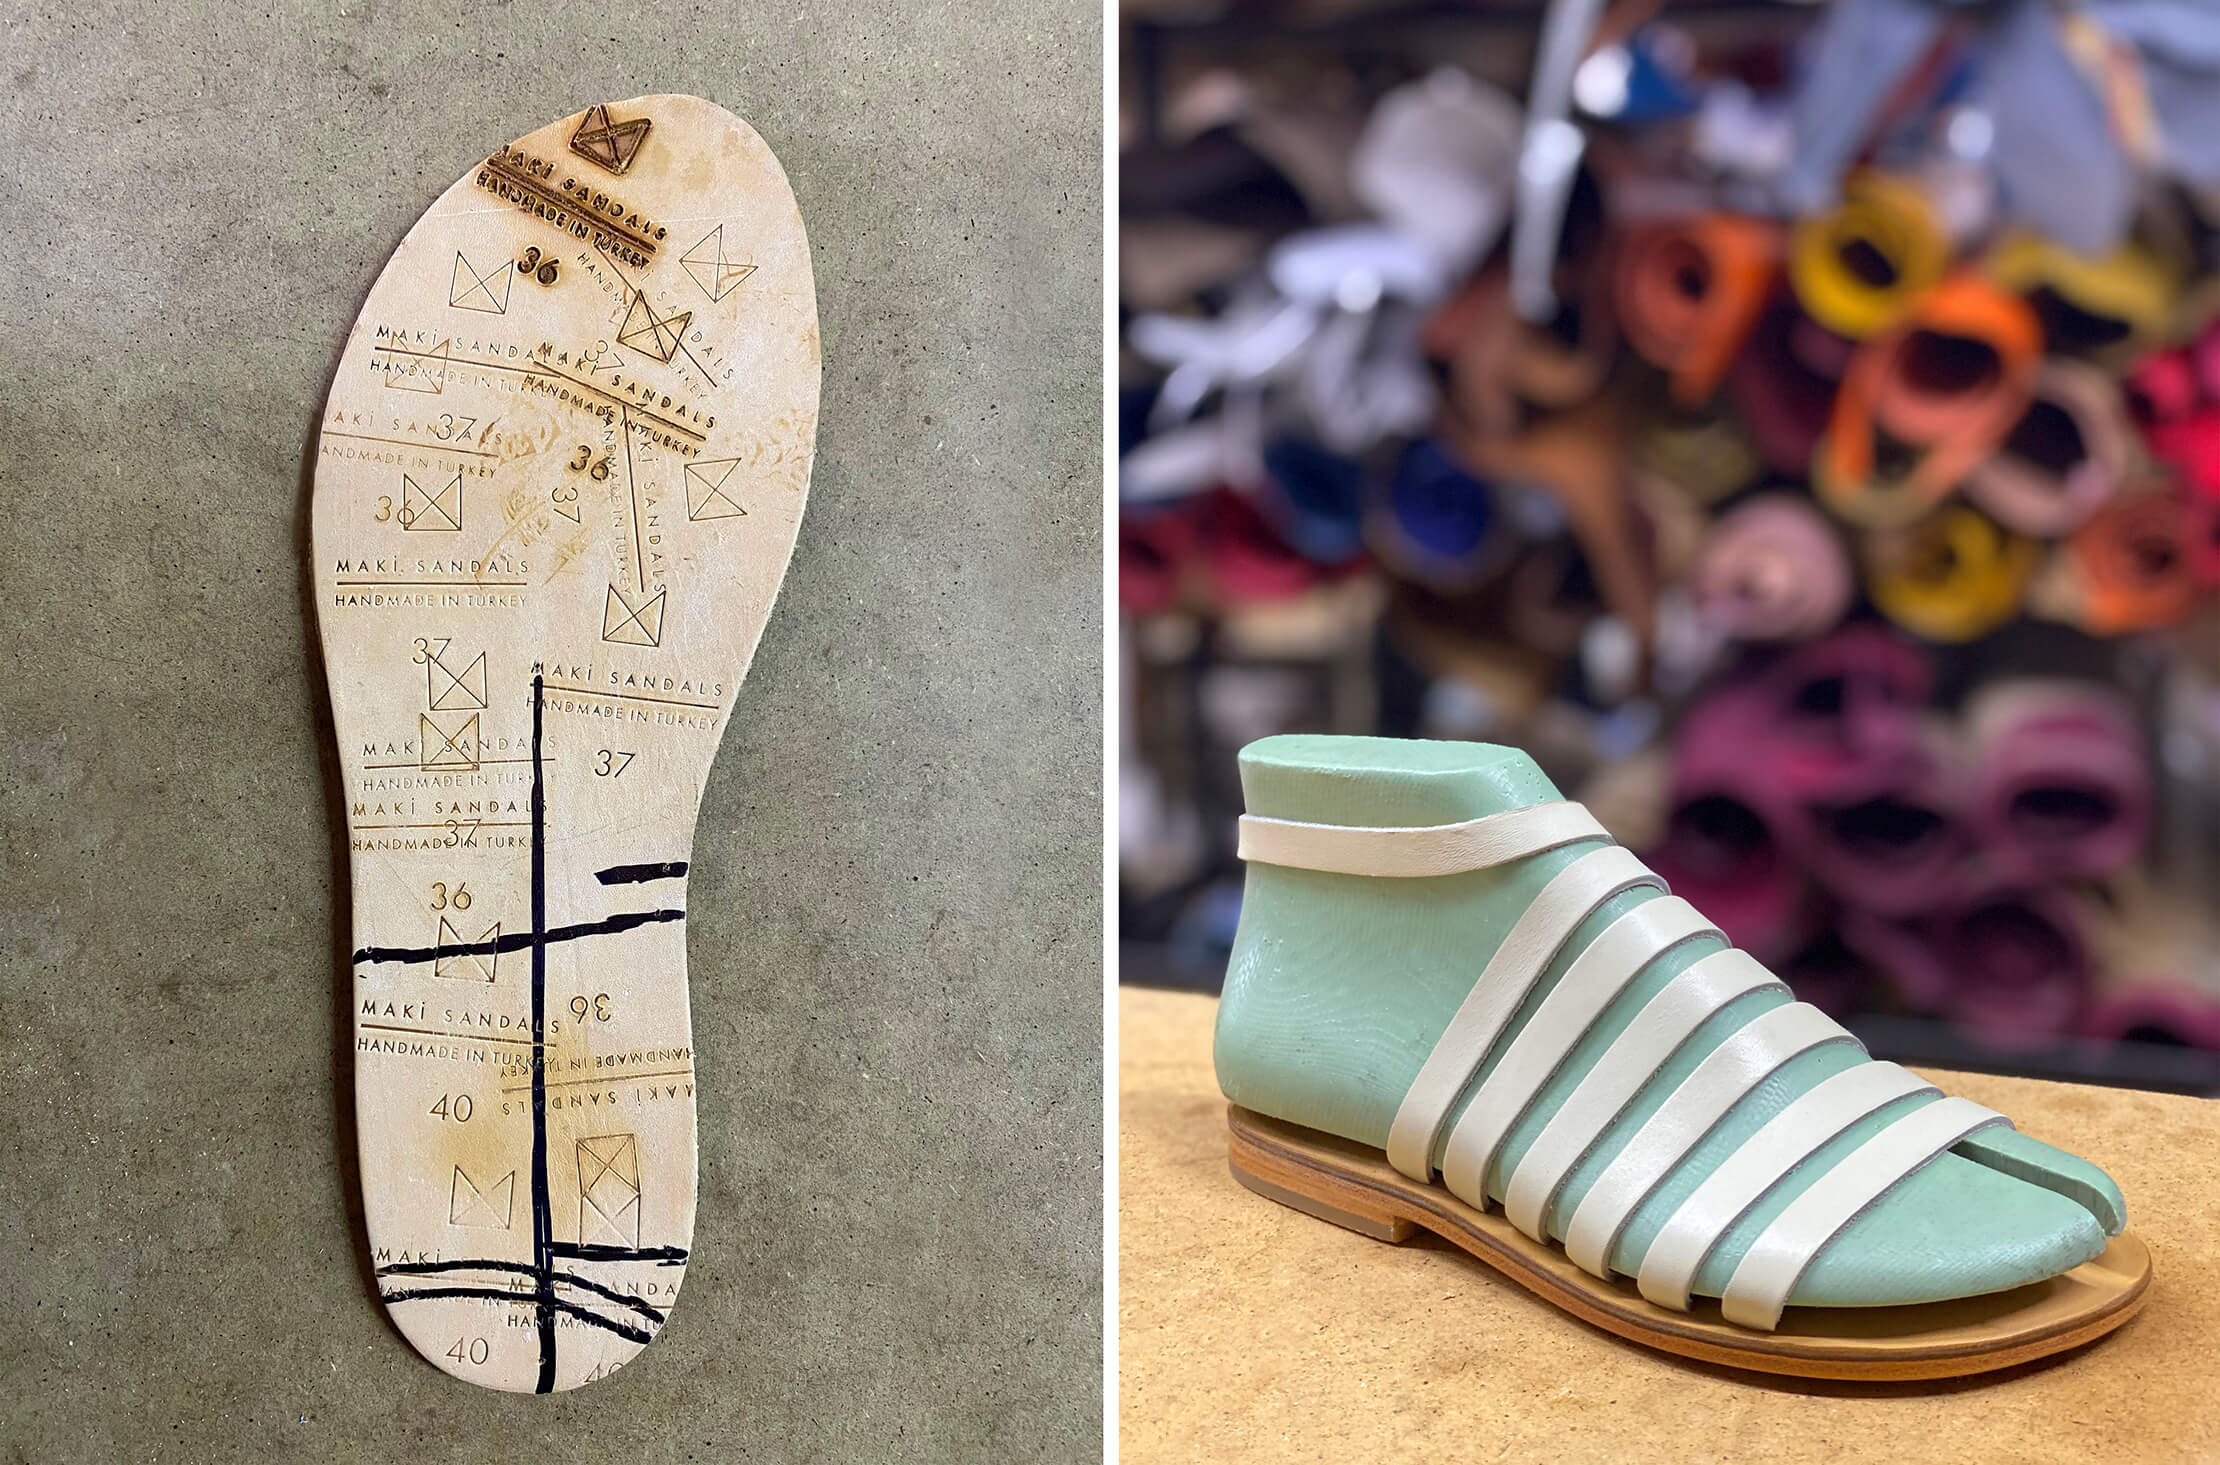 Stamp trials of the Maki Sandals logo under the sole and the sandal displayed on a shoe last.